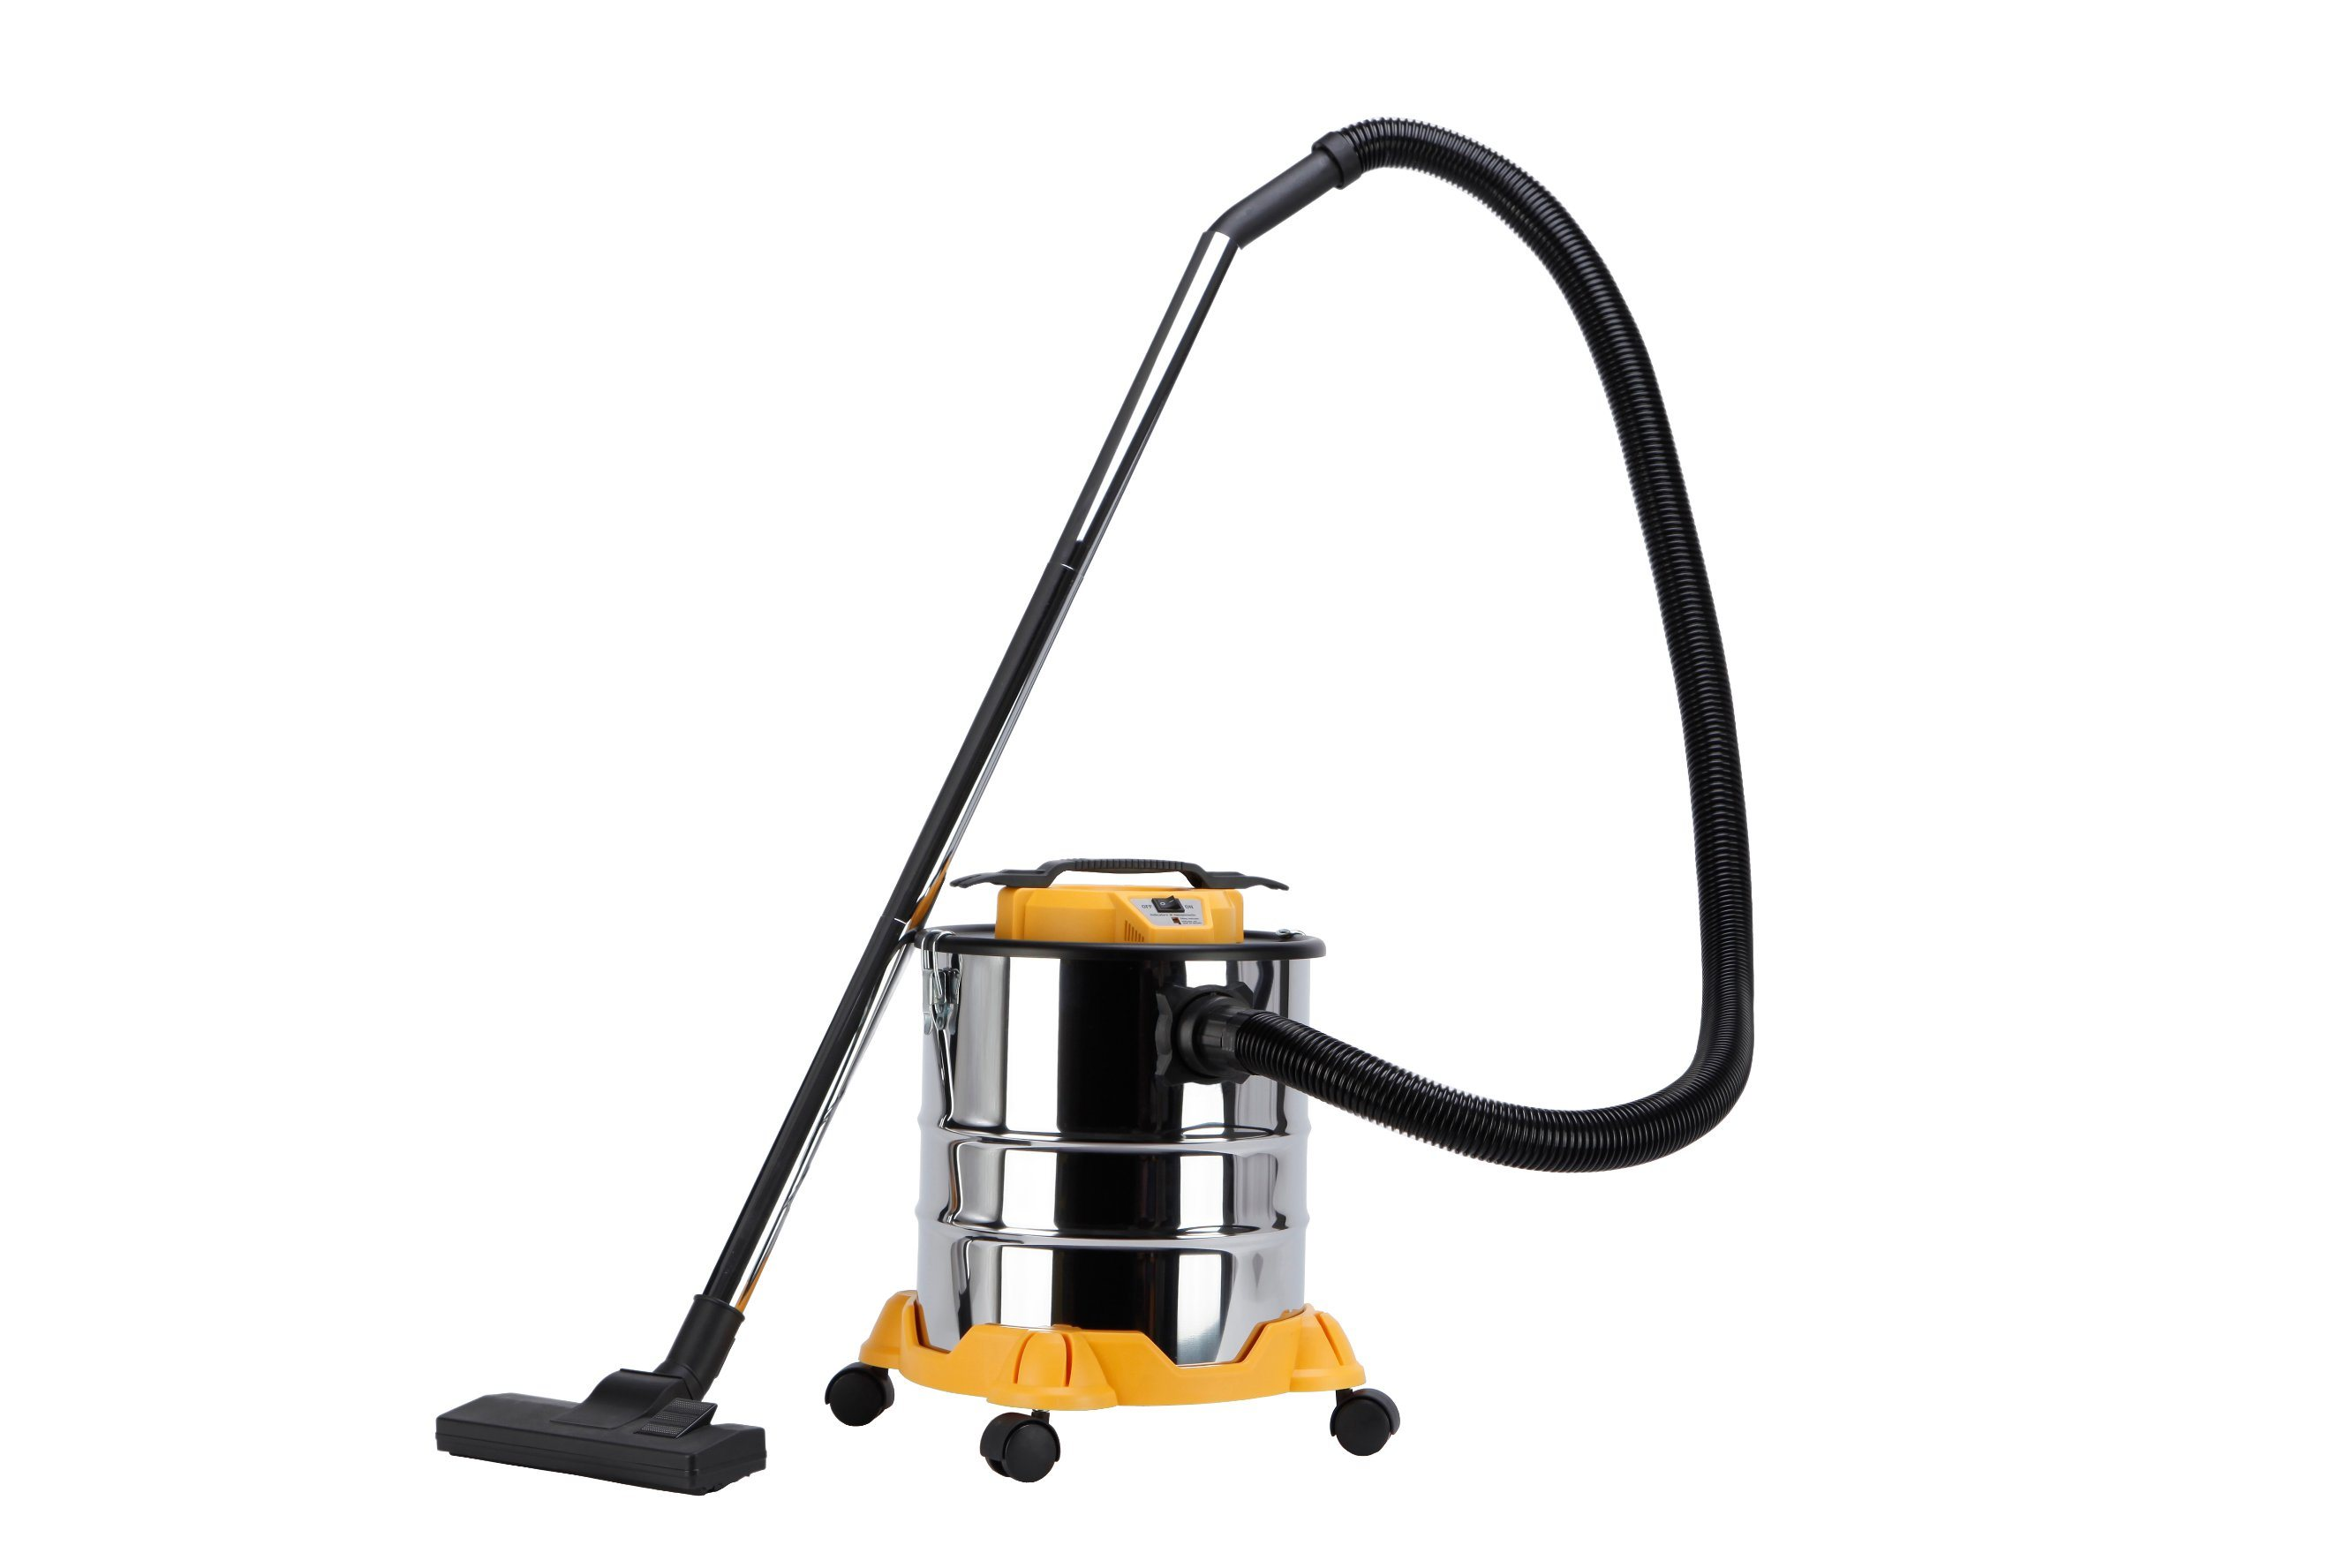 302-25L Dry Dust Fireplace Ash BBQ Ash Vacuum Cleaner with Filling Indicator